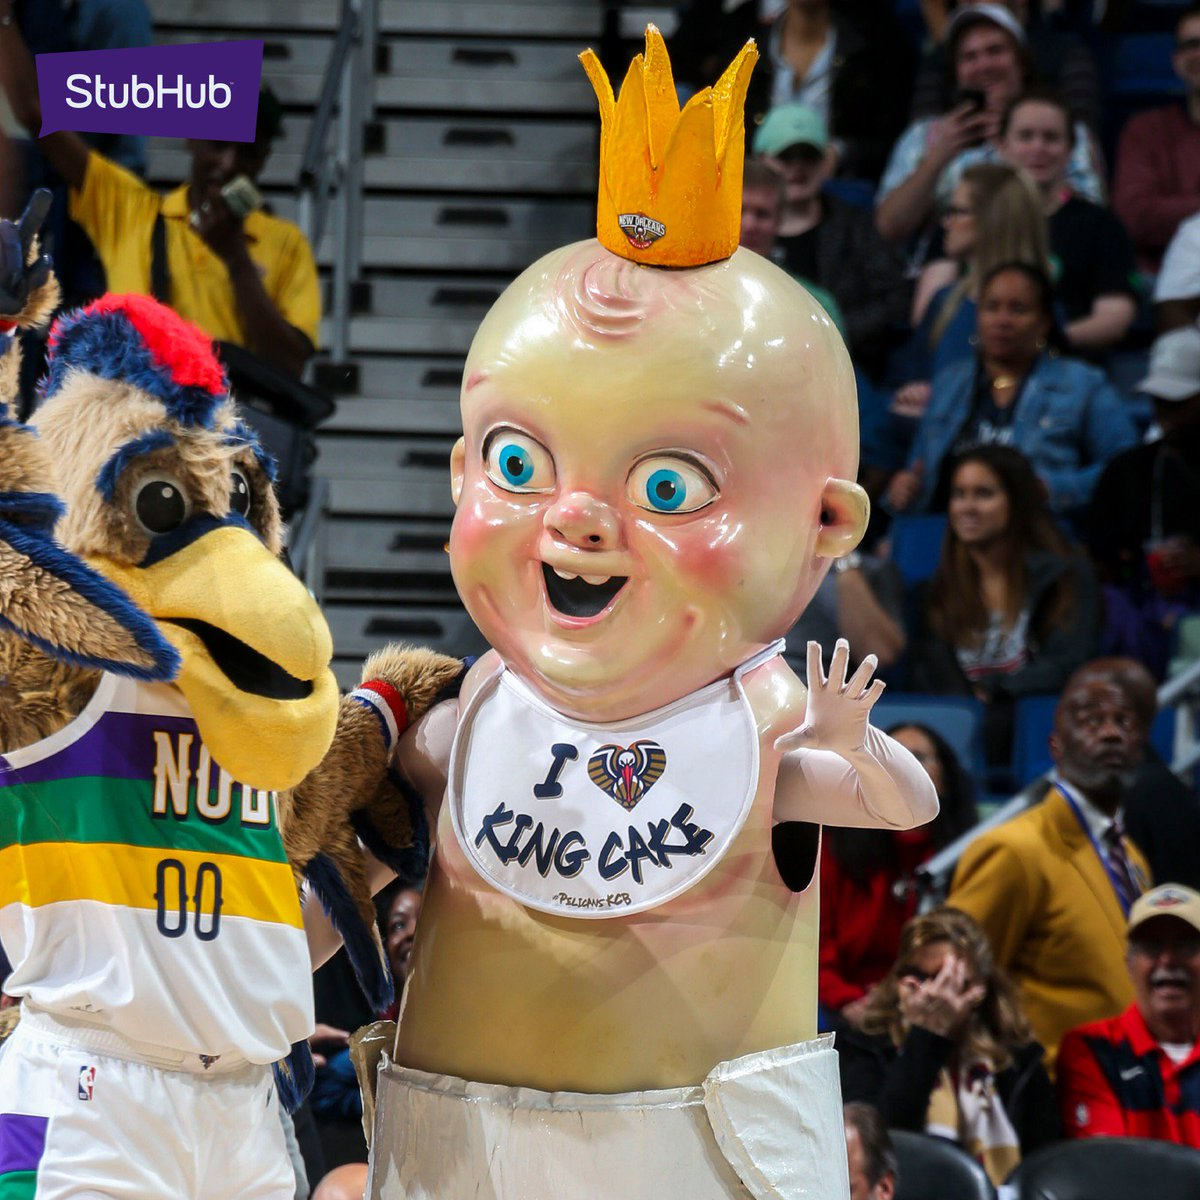 New Orleans Pelicans On Twitter Pierre King Cake Baby And